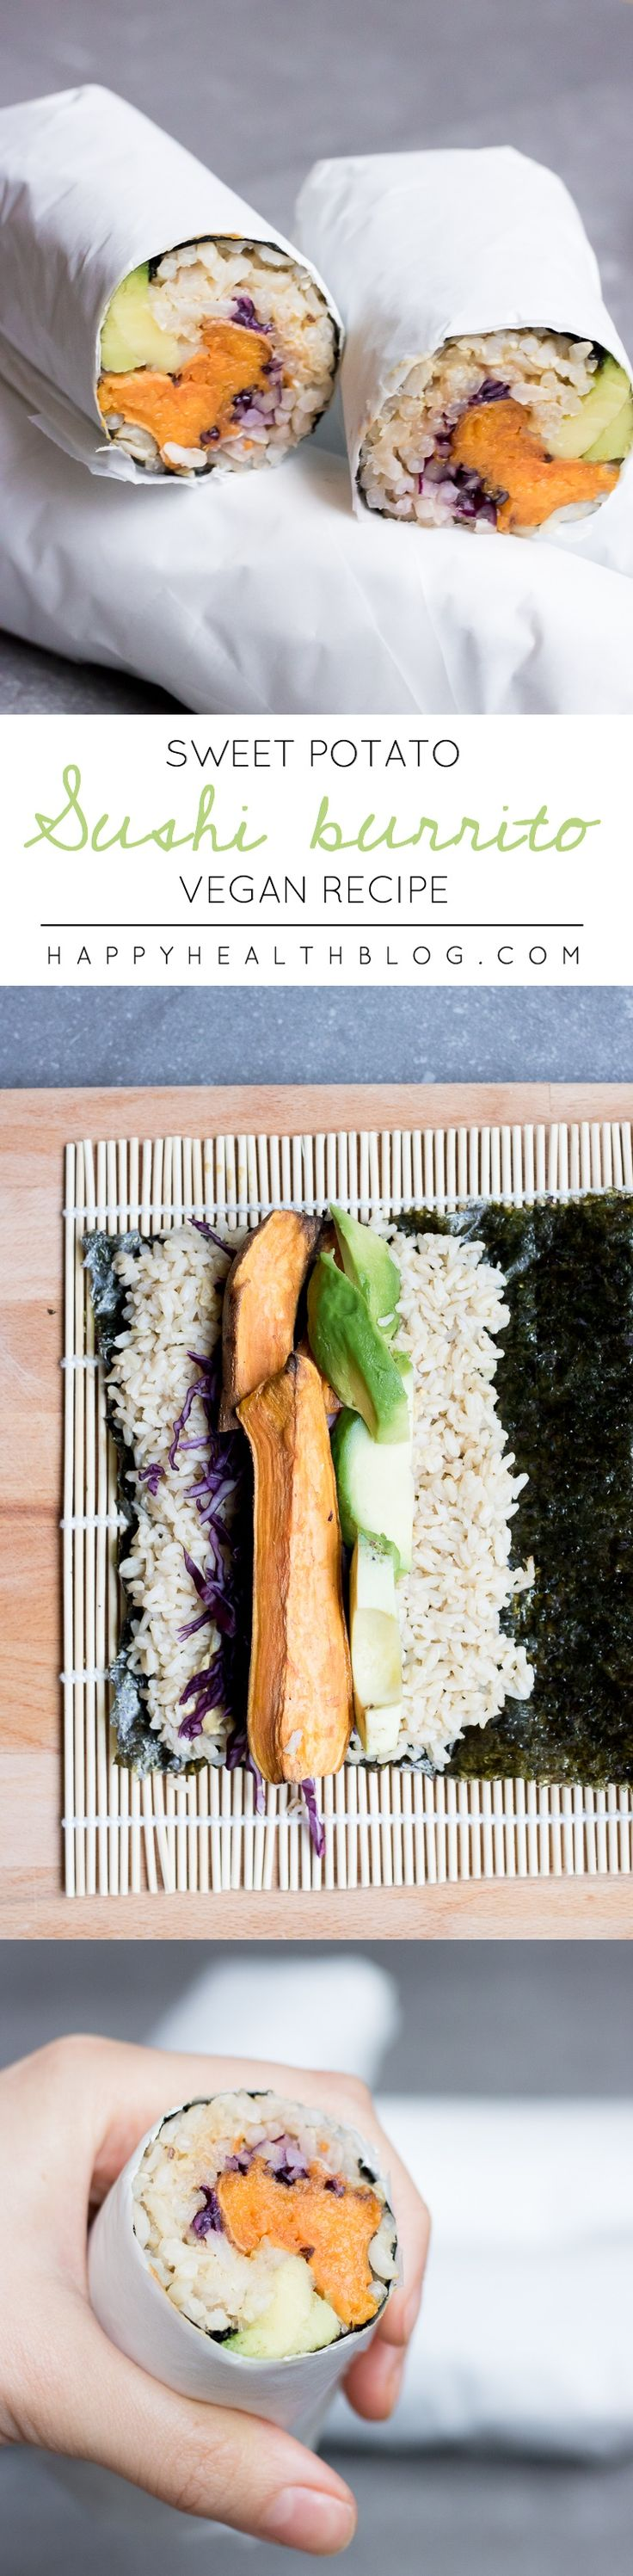 SWEET POTATO SUSHI BURRITO - healthy, vegan, clean, recipe, organic - happyhealthblog - Photo: Natalie Yonan